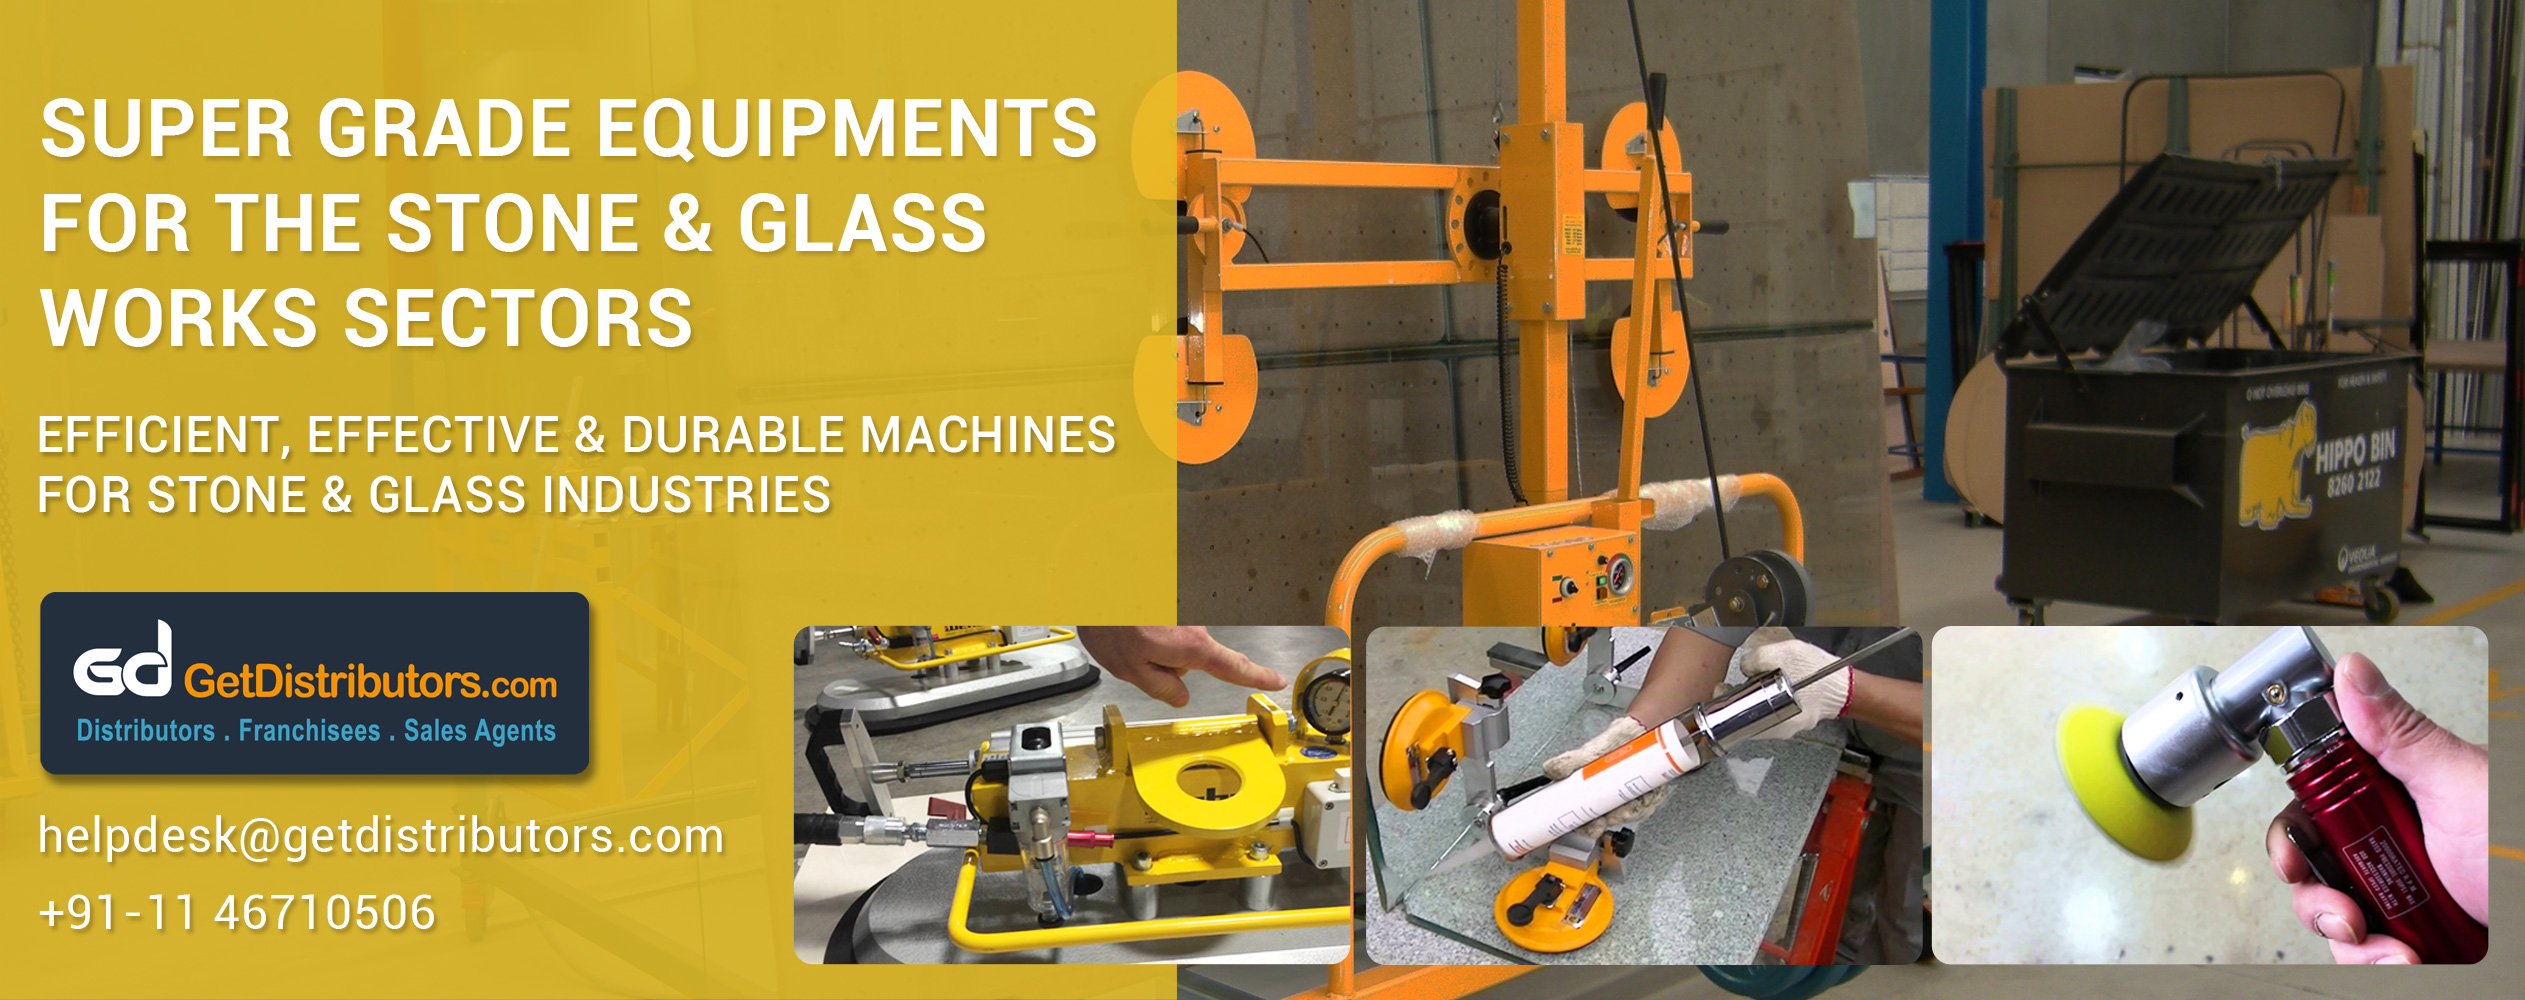 Efficient, Effective & Durable Machines For Stone & Glass Industries